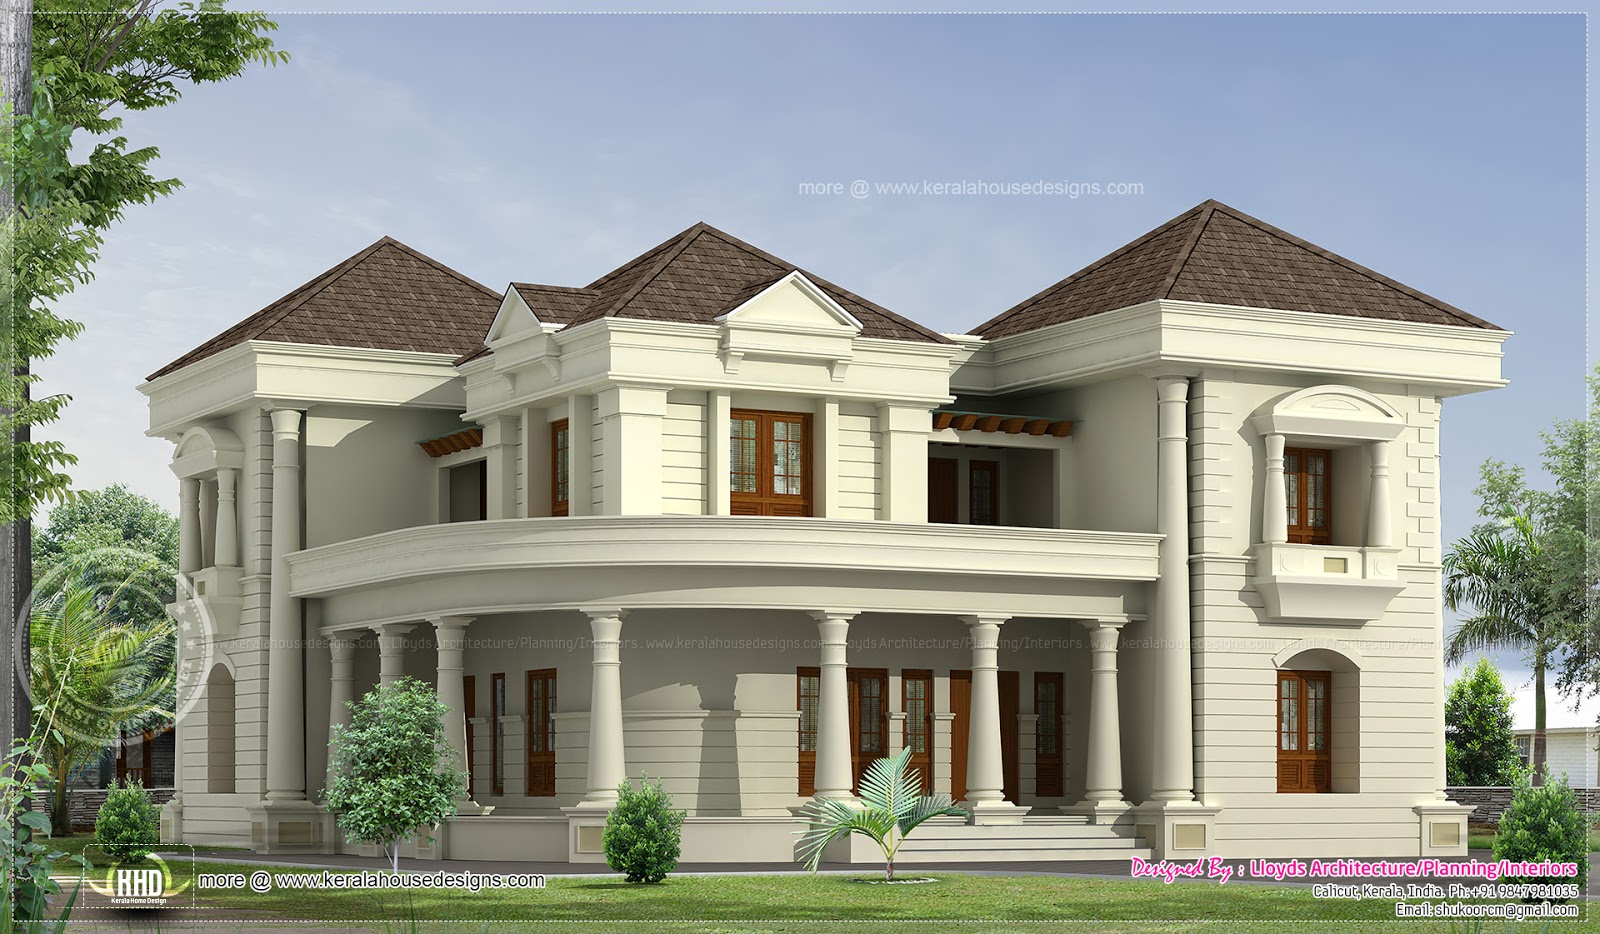 5 bedroom luxurious bungalow floor plan and 3d view for Luxury bungalow designs